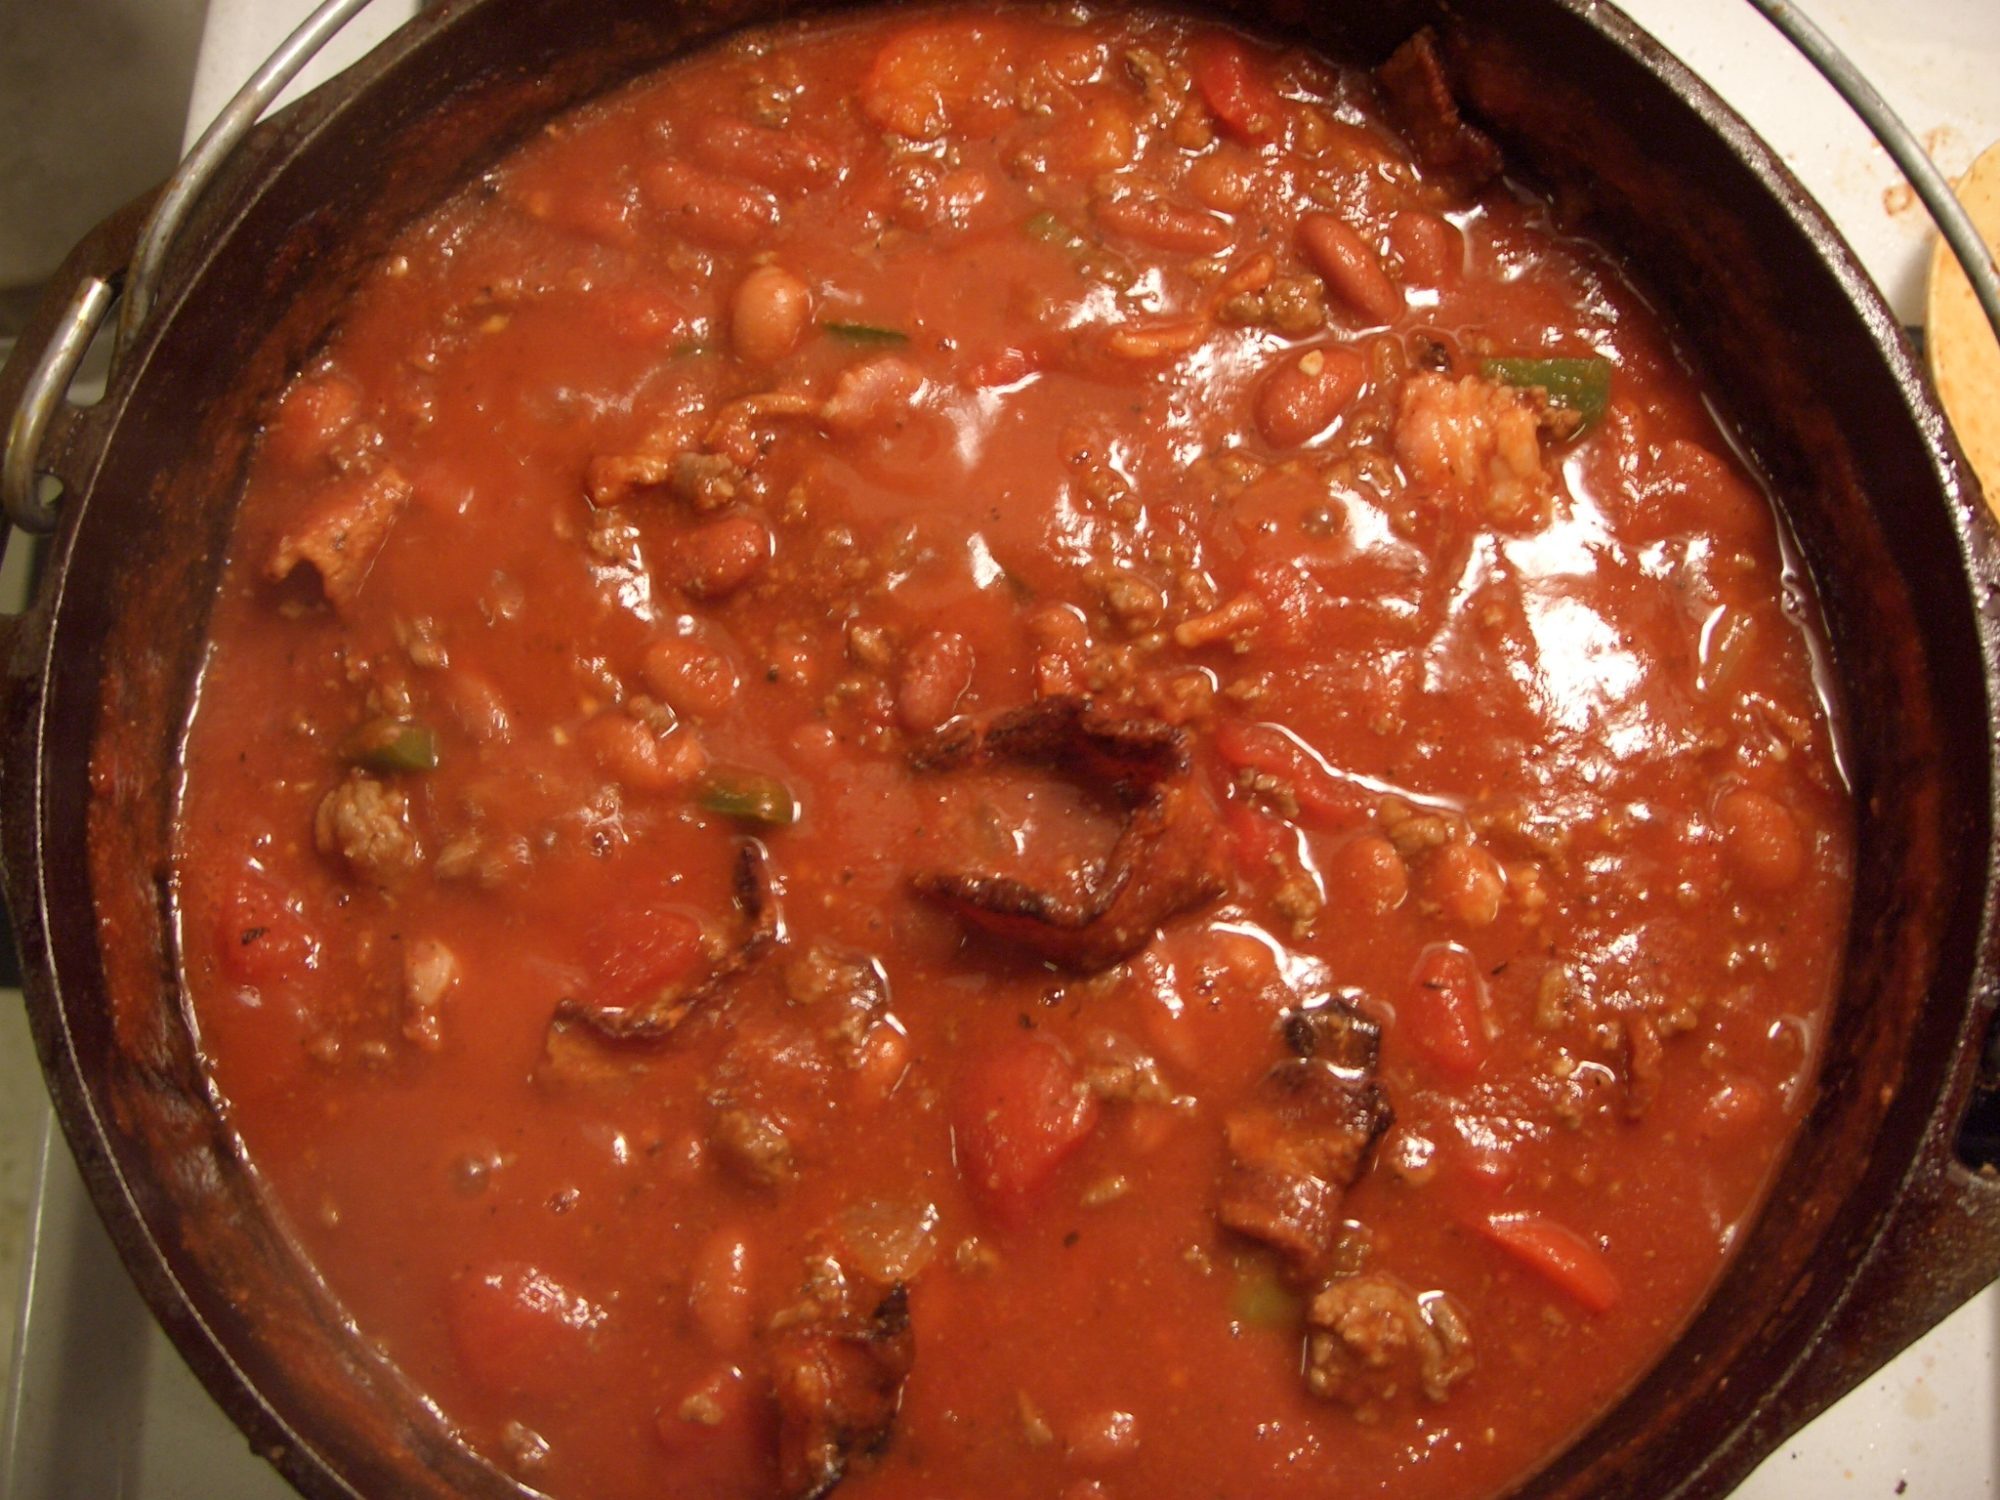 Top Tasting Chili Recipe For A Healthy Nutritious Complete Family Meal